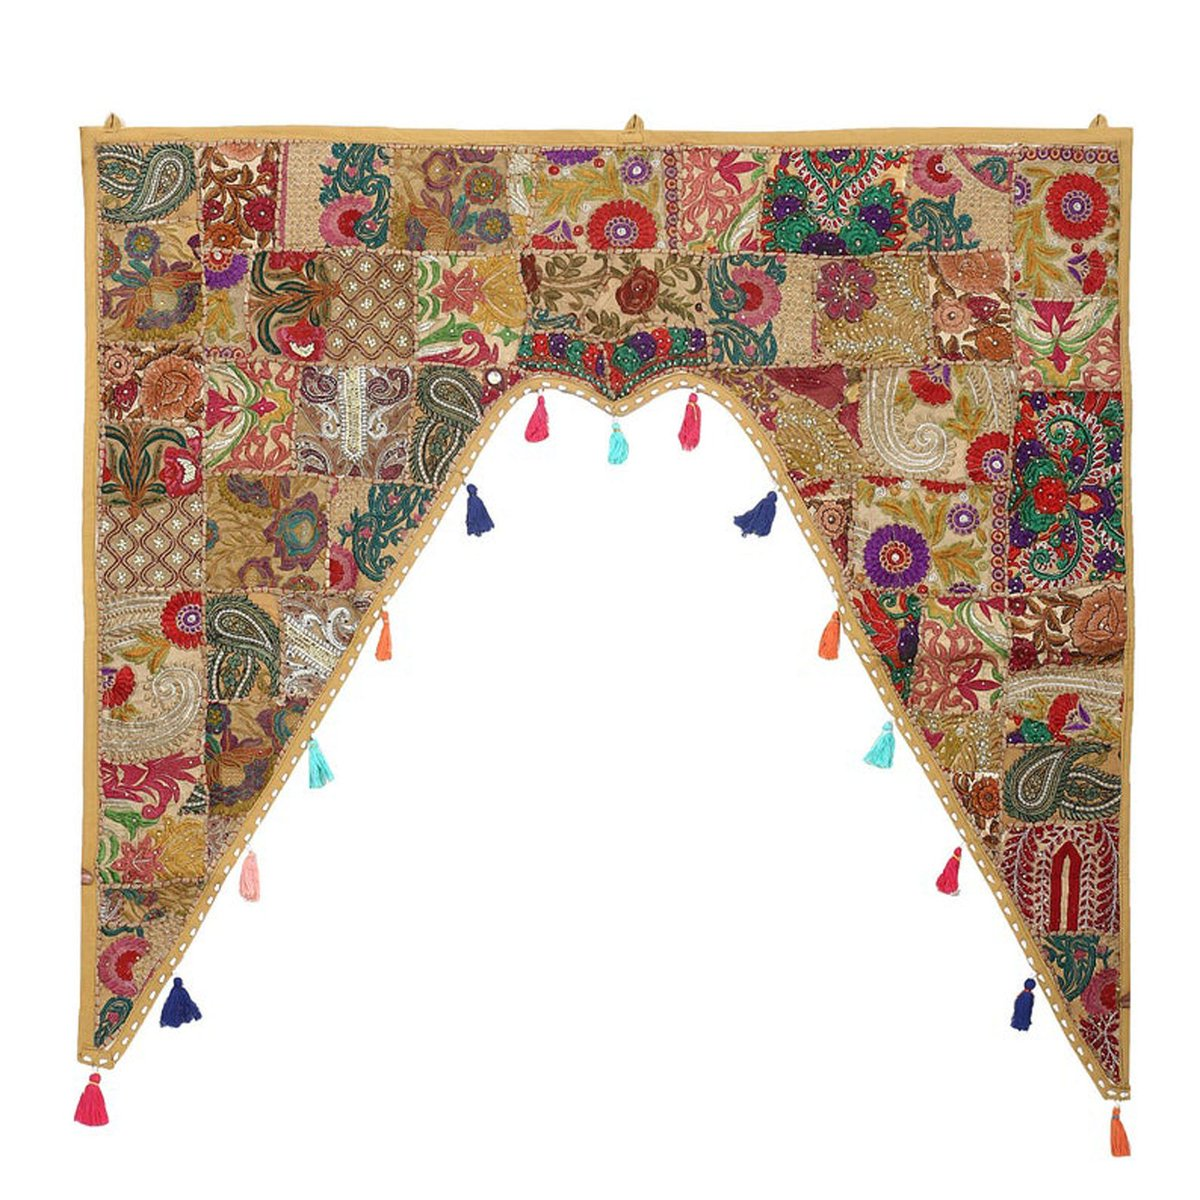 Excited to share the latest addition to my #etsy shop: Indian Window Pelmet Gate Door Topper Window Indian Traditional Hand Embroidered Door Valance Wall Hanging Tapestry https://etsy.me/2Xq3two  #ethnicwallhanging #patchworkvalance #doorvalance #doorhanging #wallpiece pic.twitter.com/n4RYpBKeWV